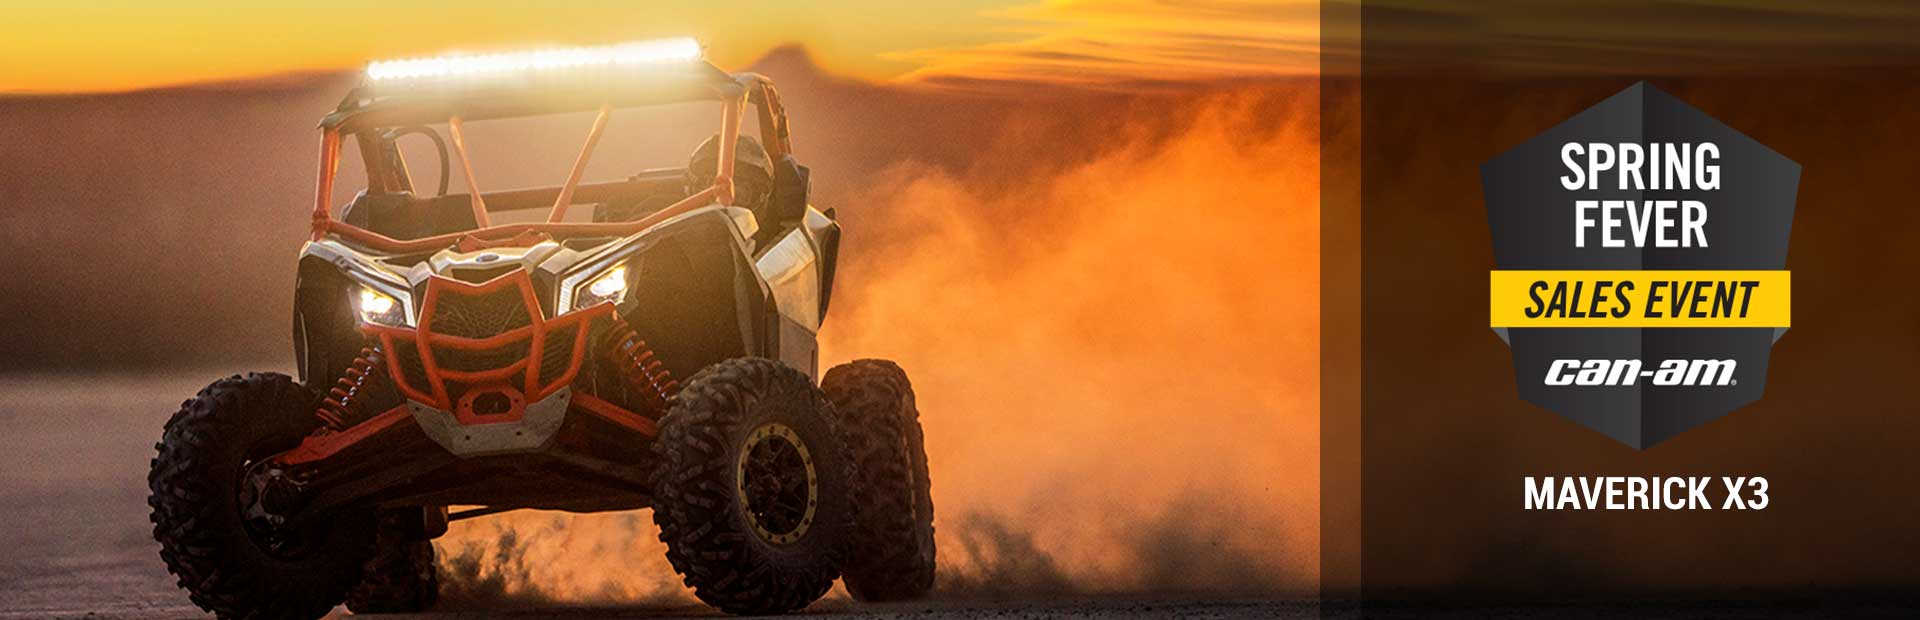 Can-Am: Spring Fever Sales Event (Maverick X3)